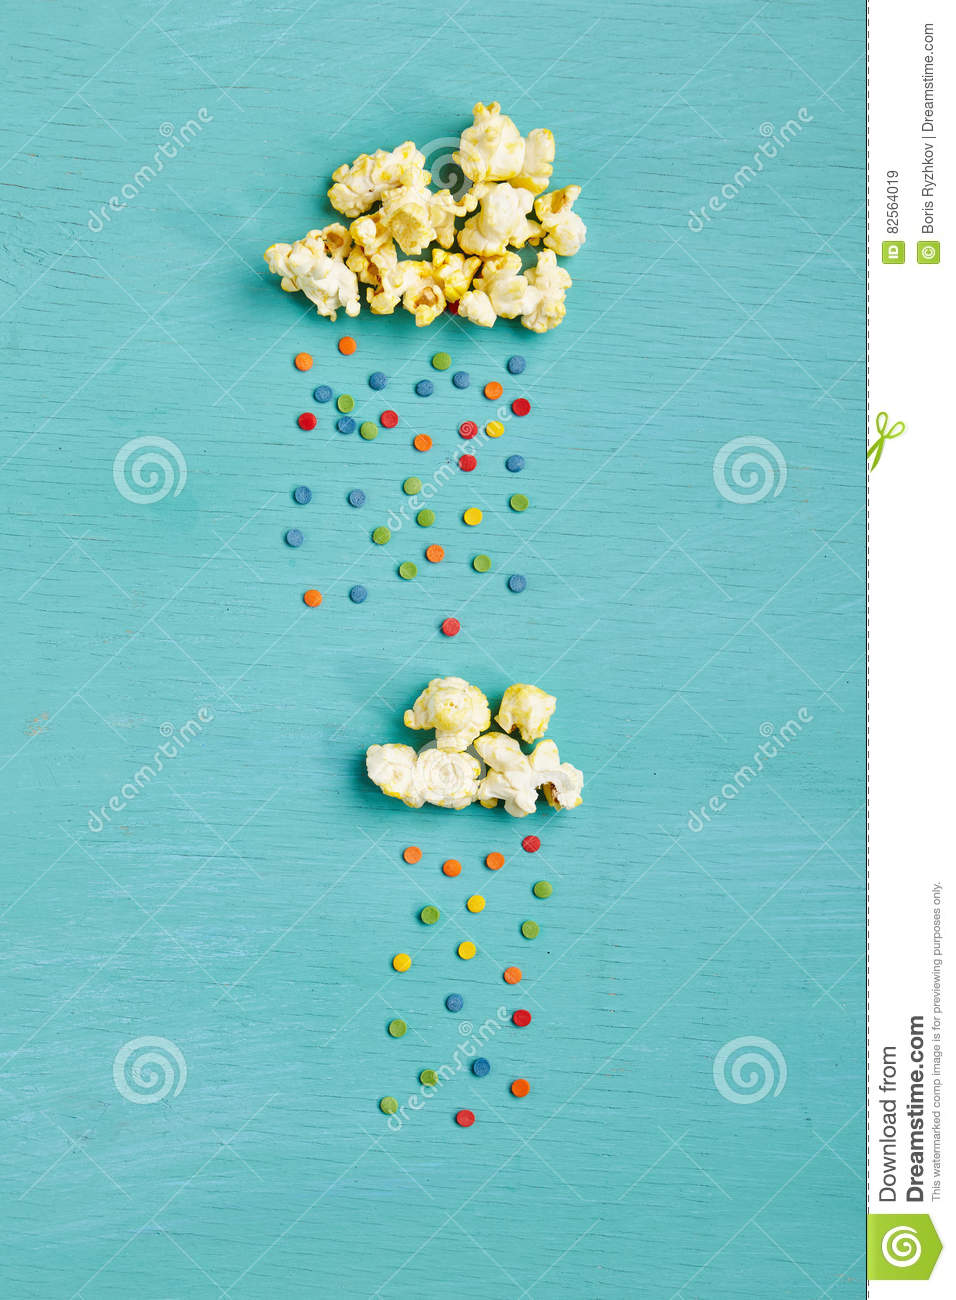 Download Popcorn Clouds With Colorful Rain Stock Image - Image of hipster, cloud: 82564019